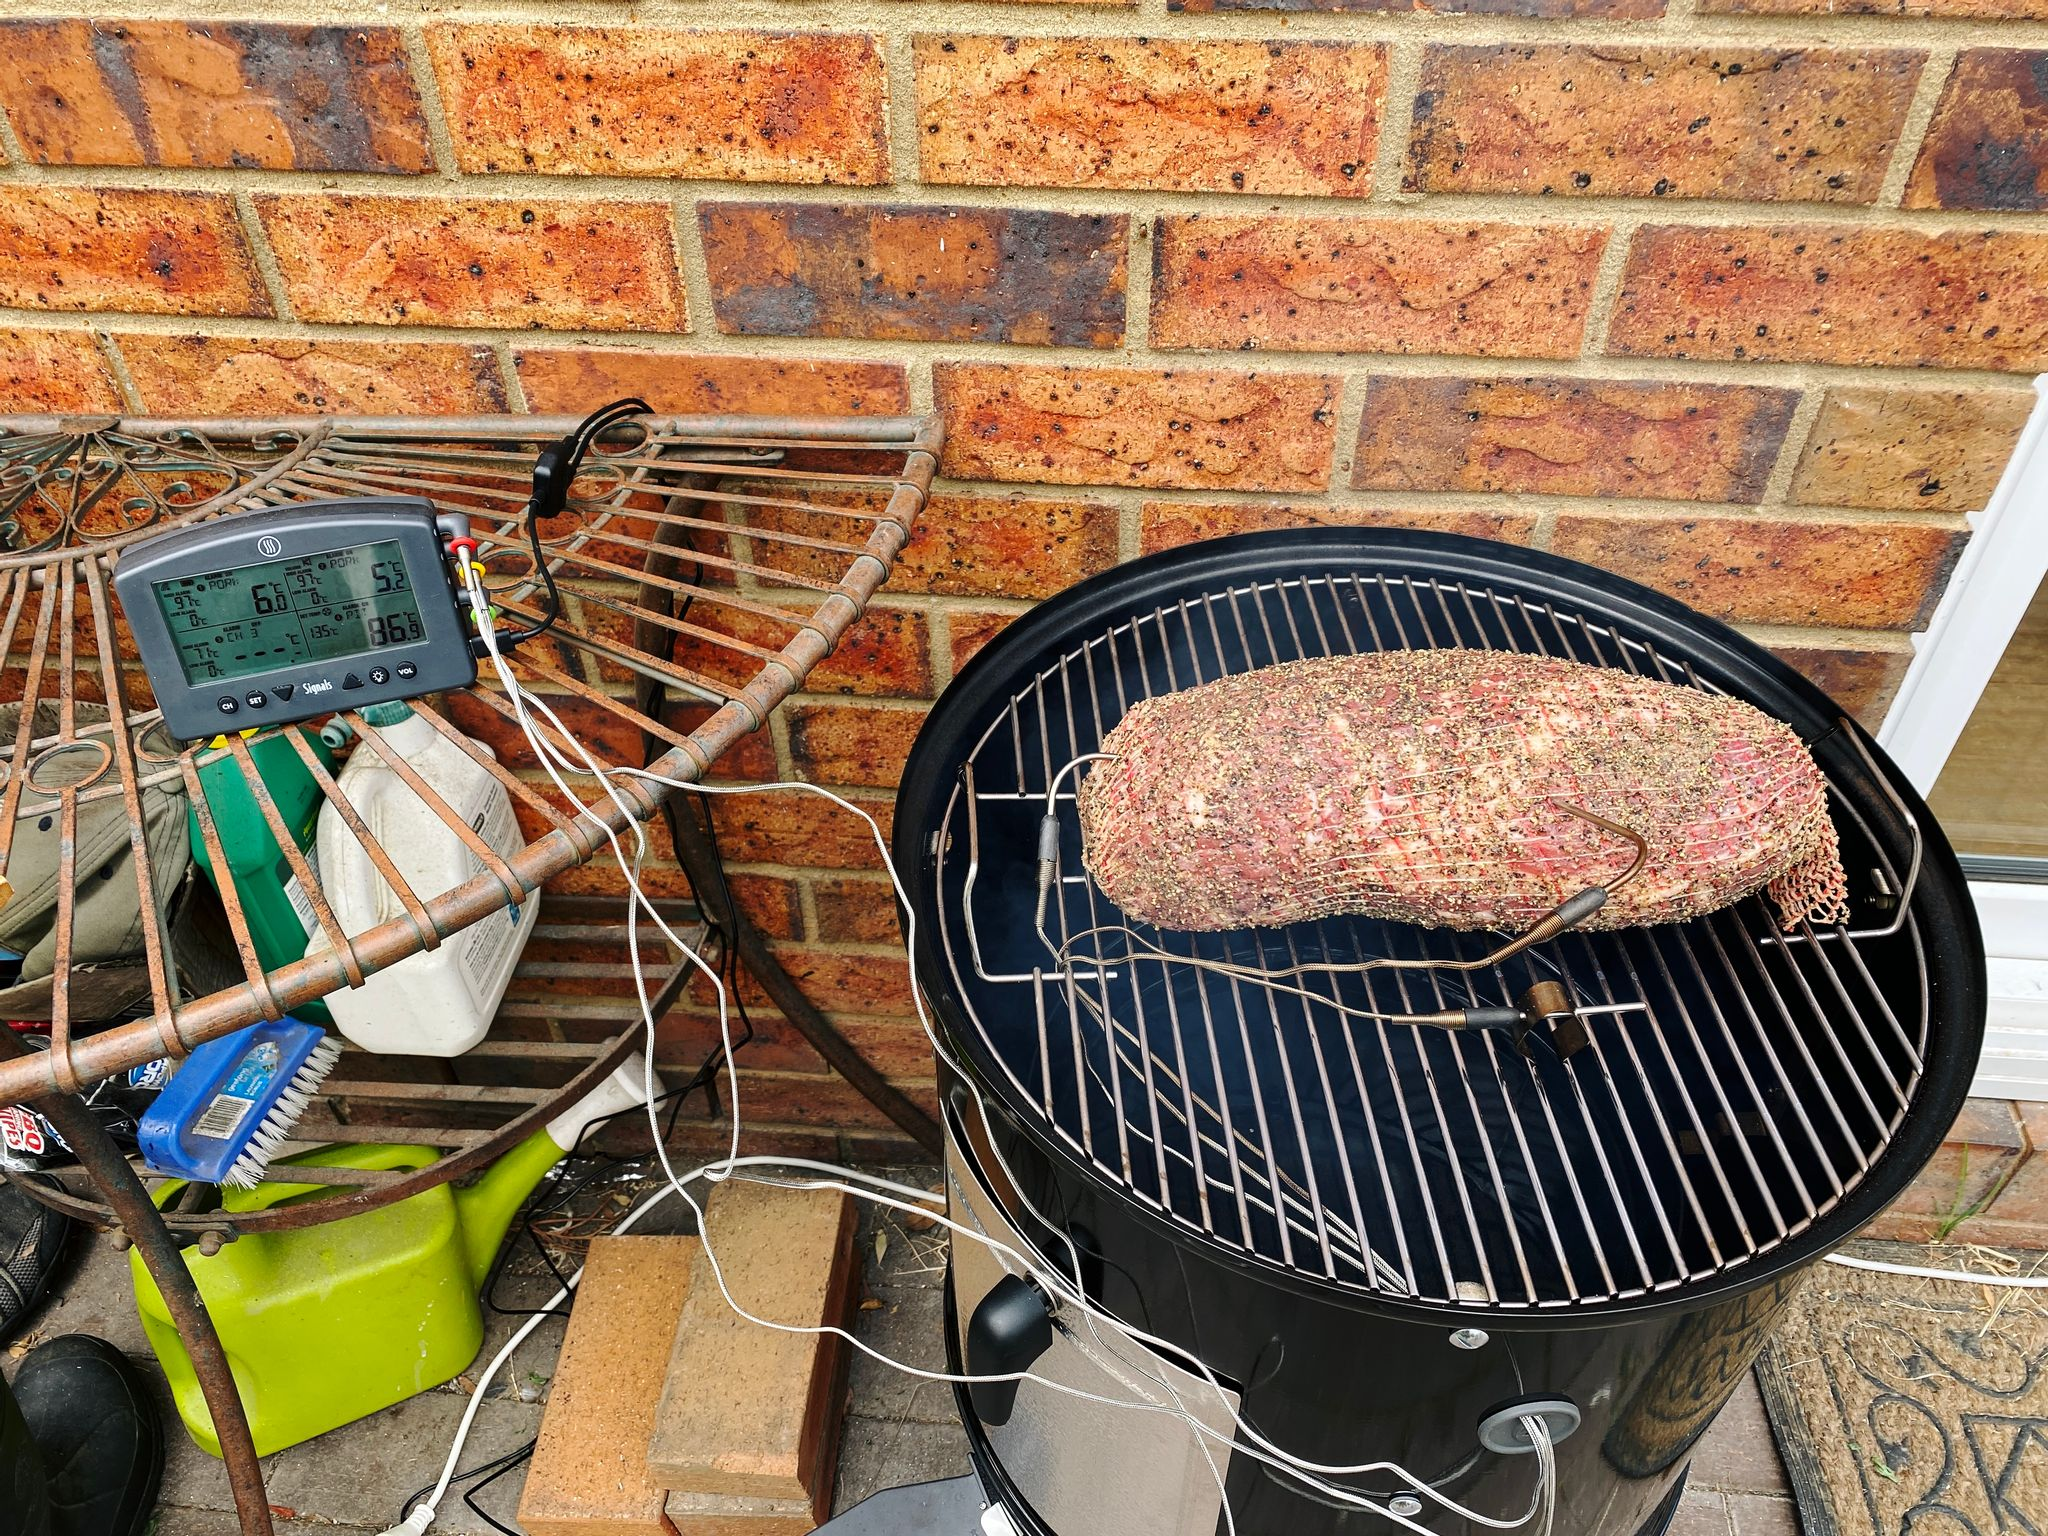 A photo of a big chunk of meat on a smoker, with temperature probes going into it.